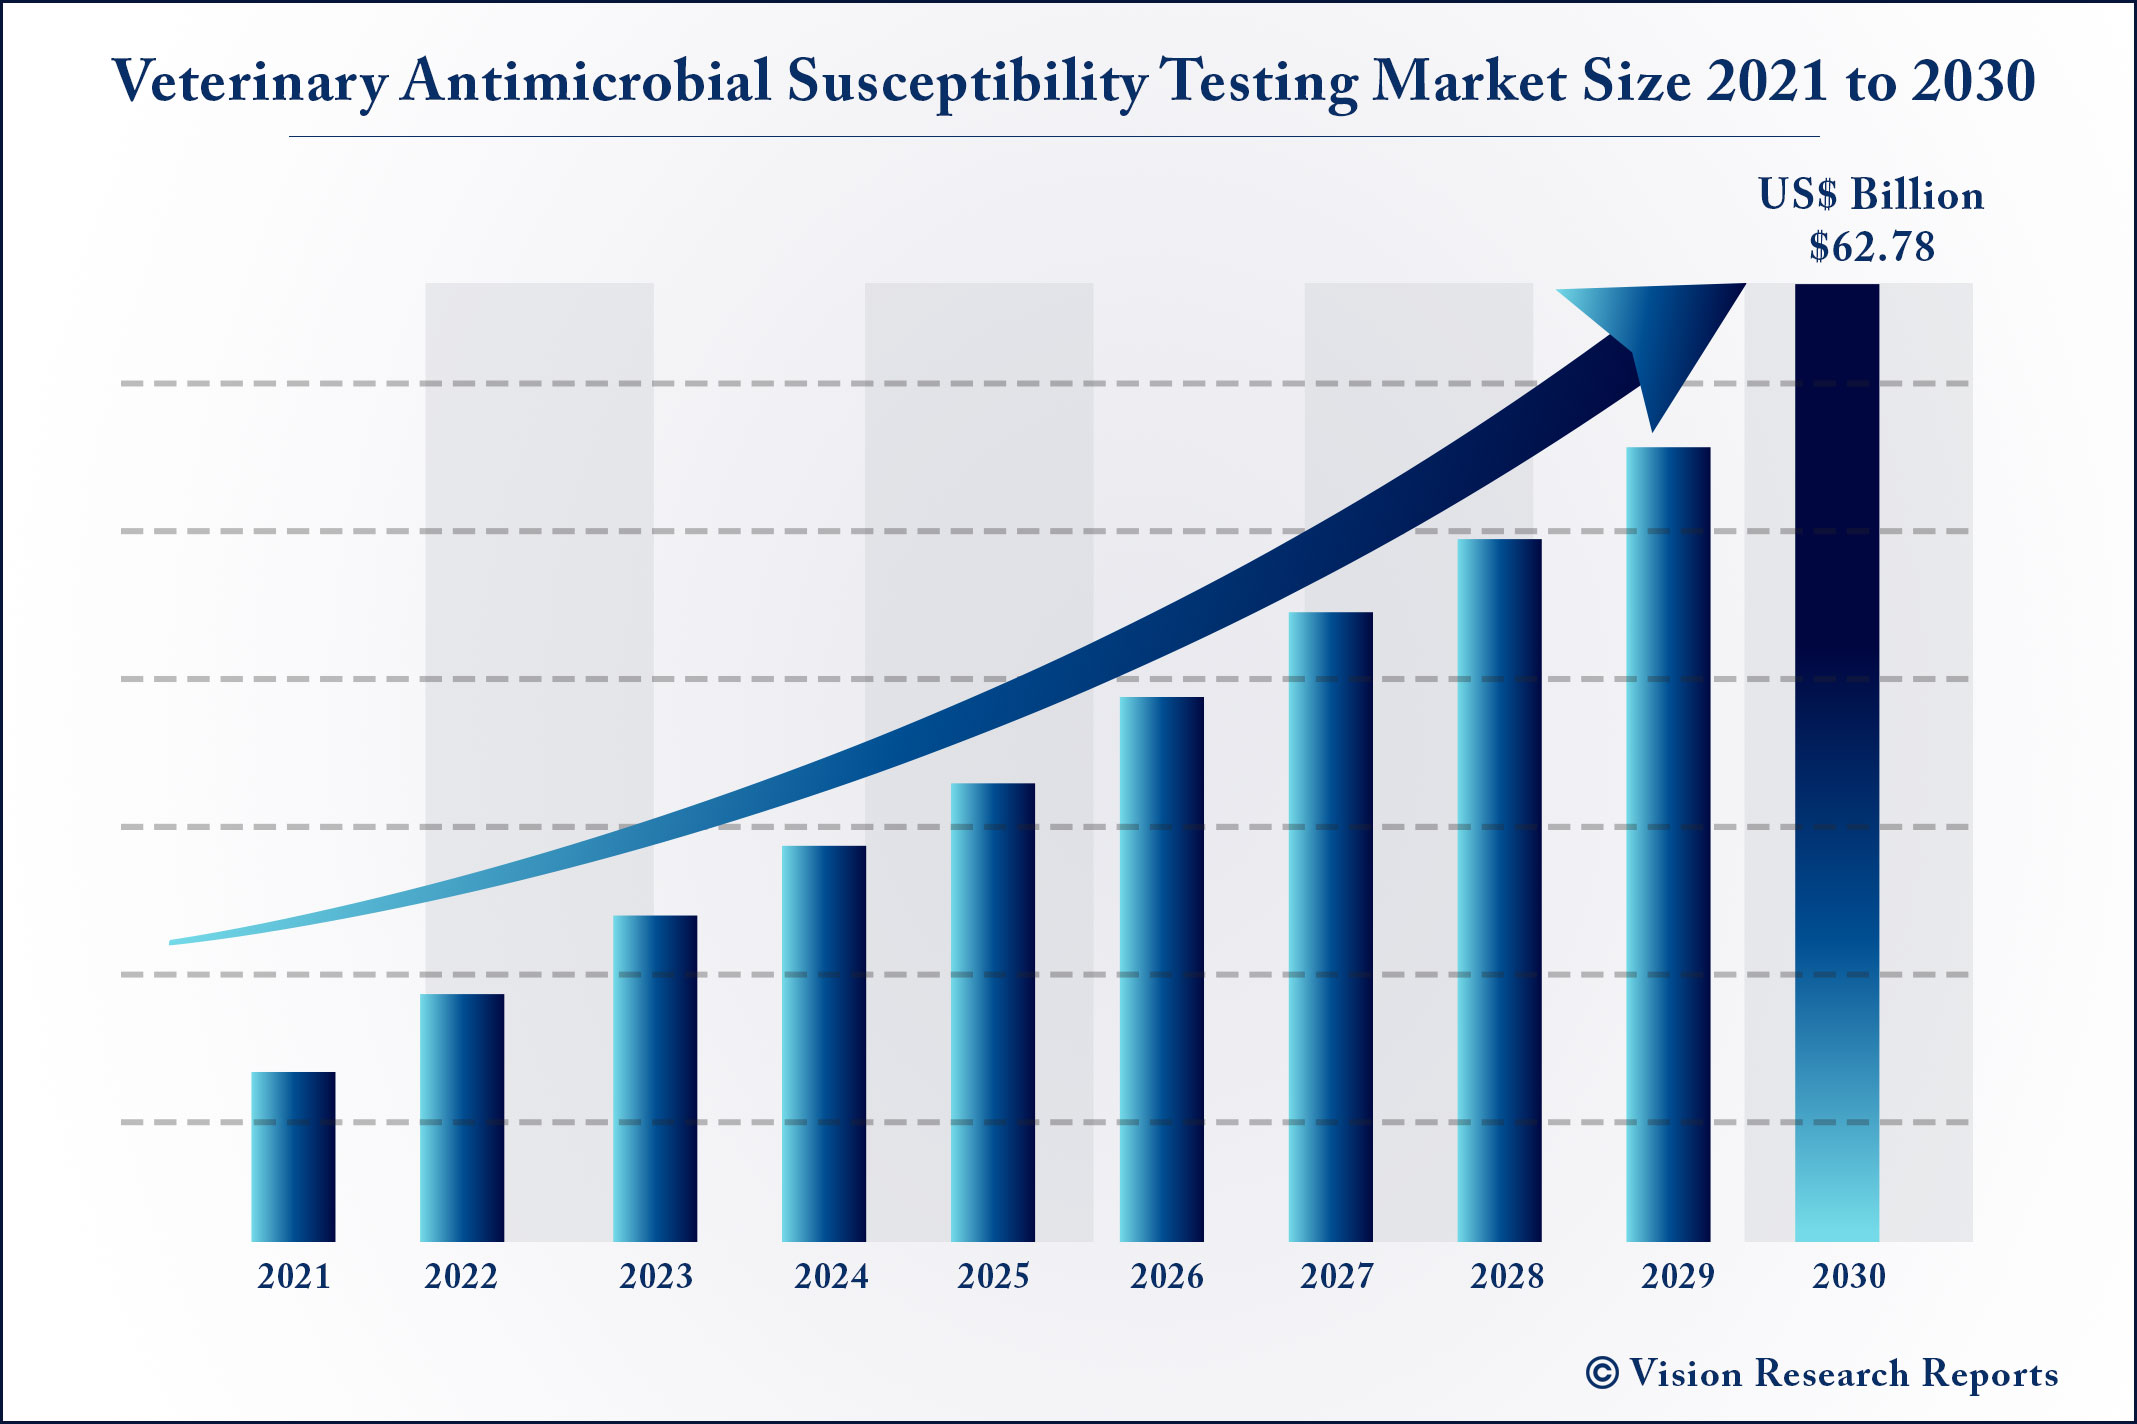 Veterinary Antimicrobial Susceptibility Testing Market Size 2021 to 2030